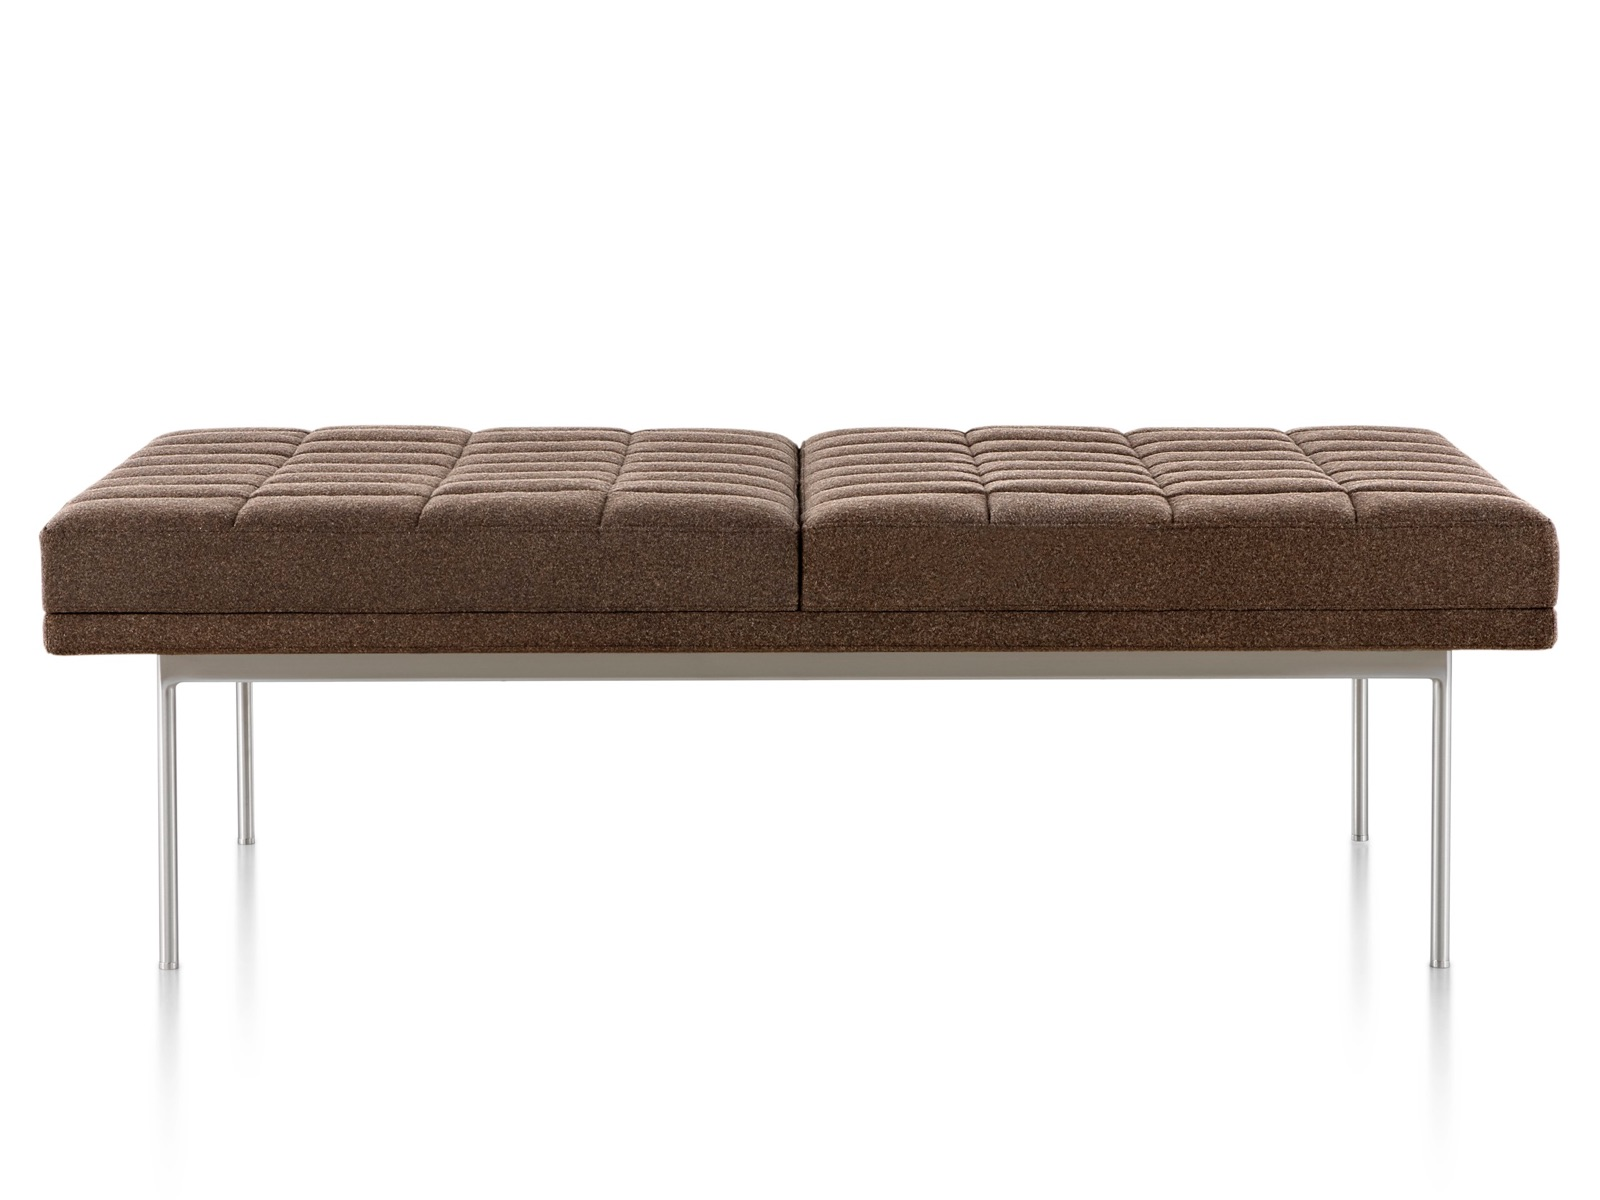 Side view of a brown Tuxedo Bench.